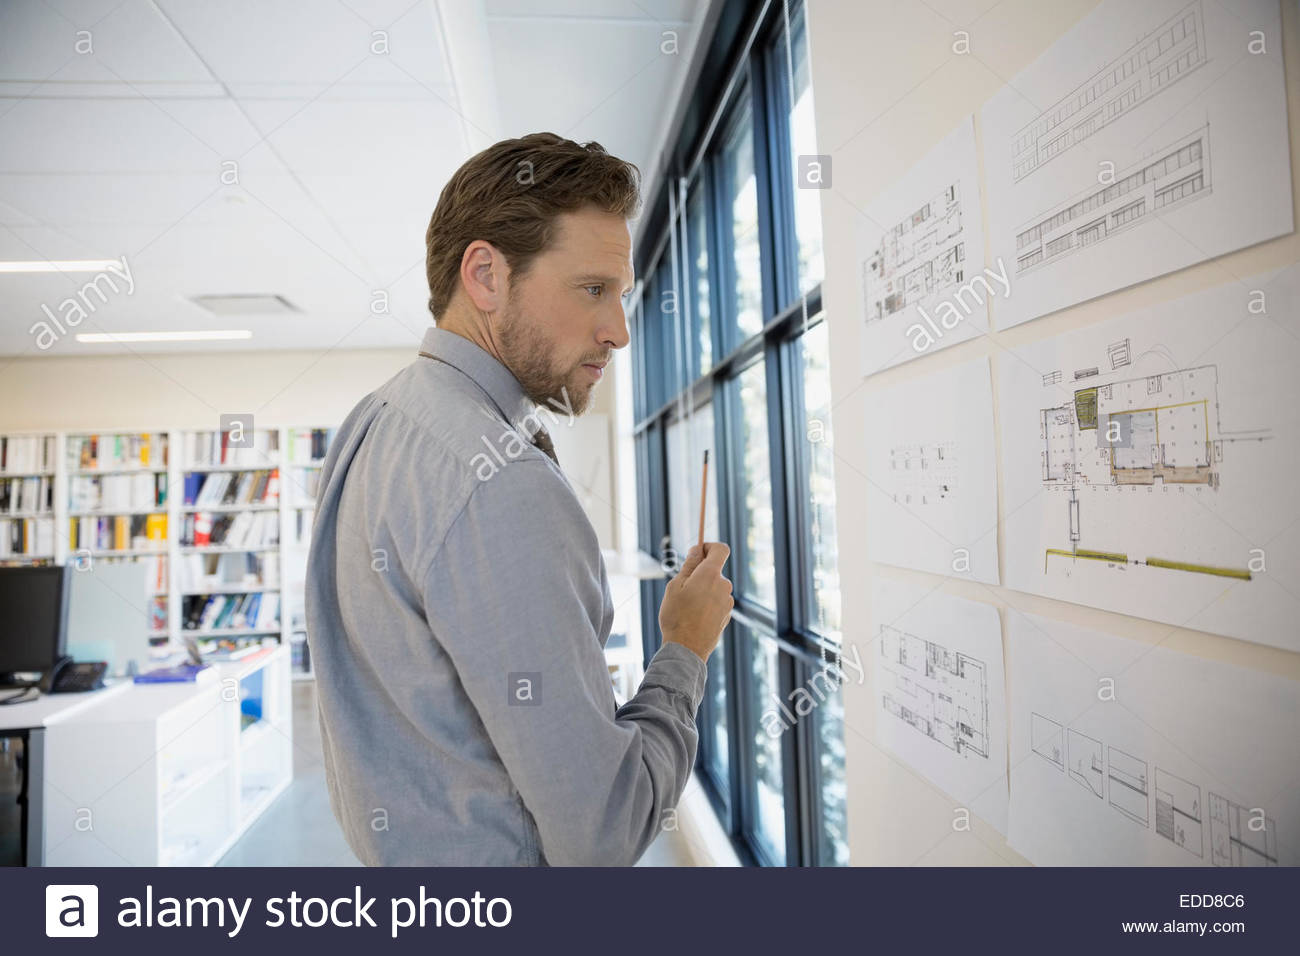 Architect examining plans on wall - Stock Image